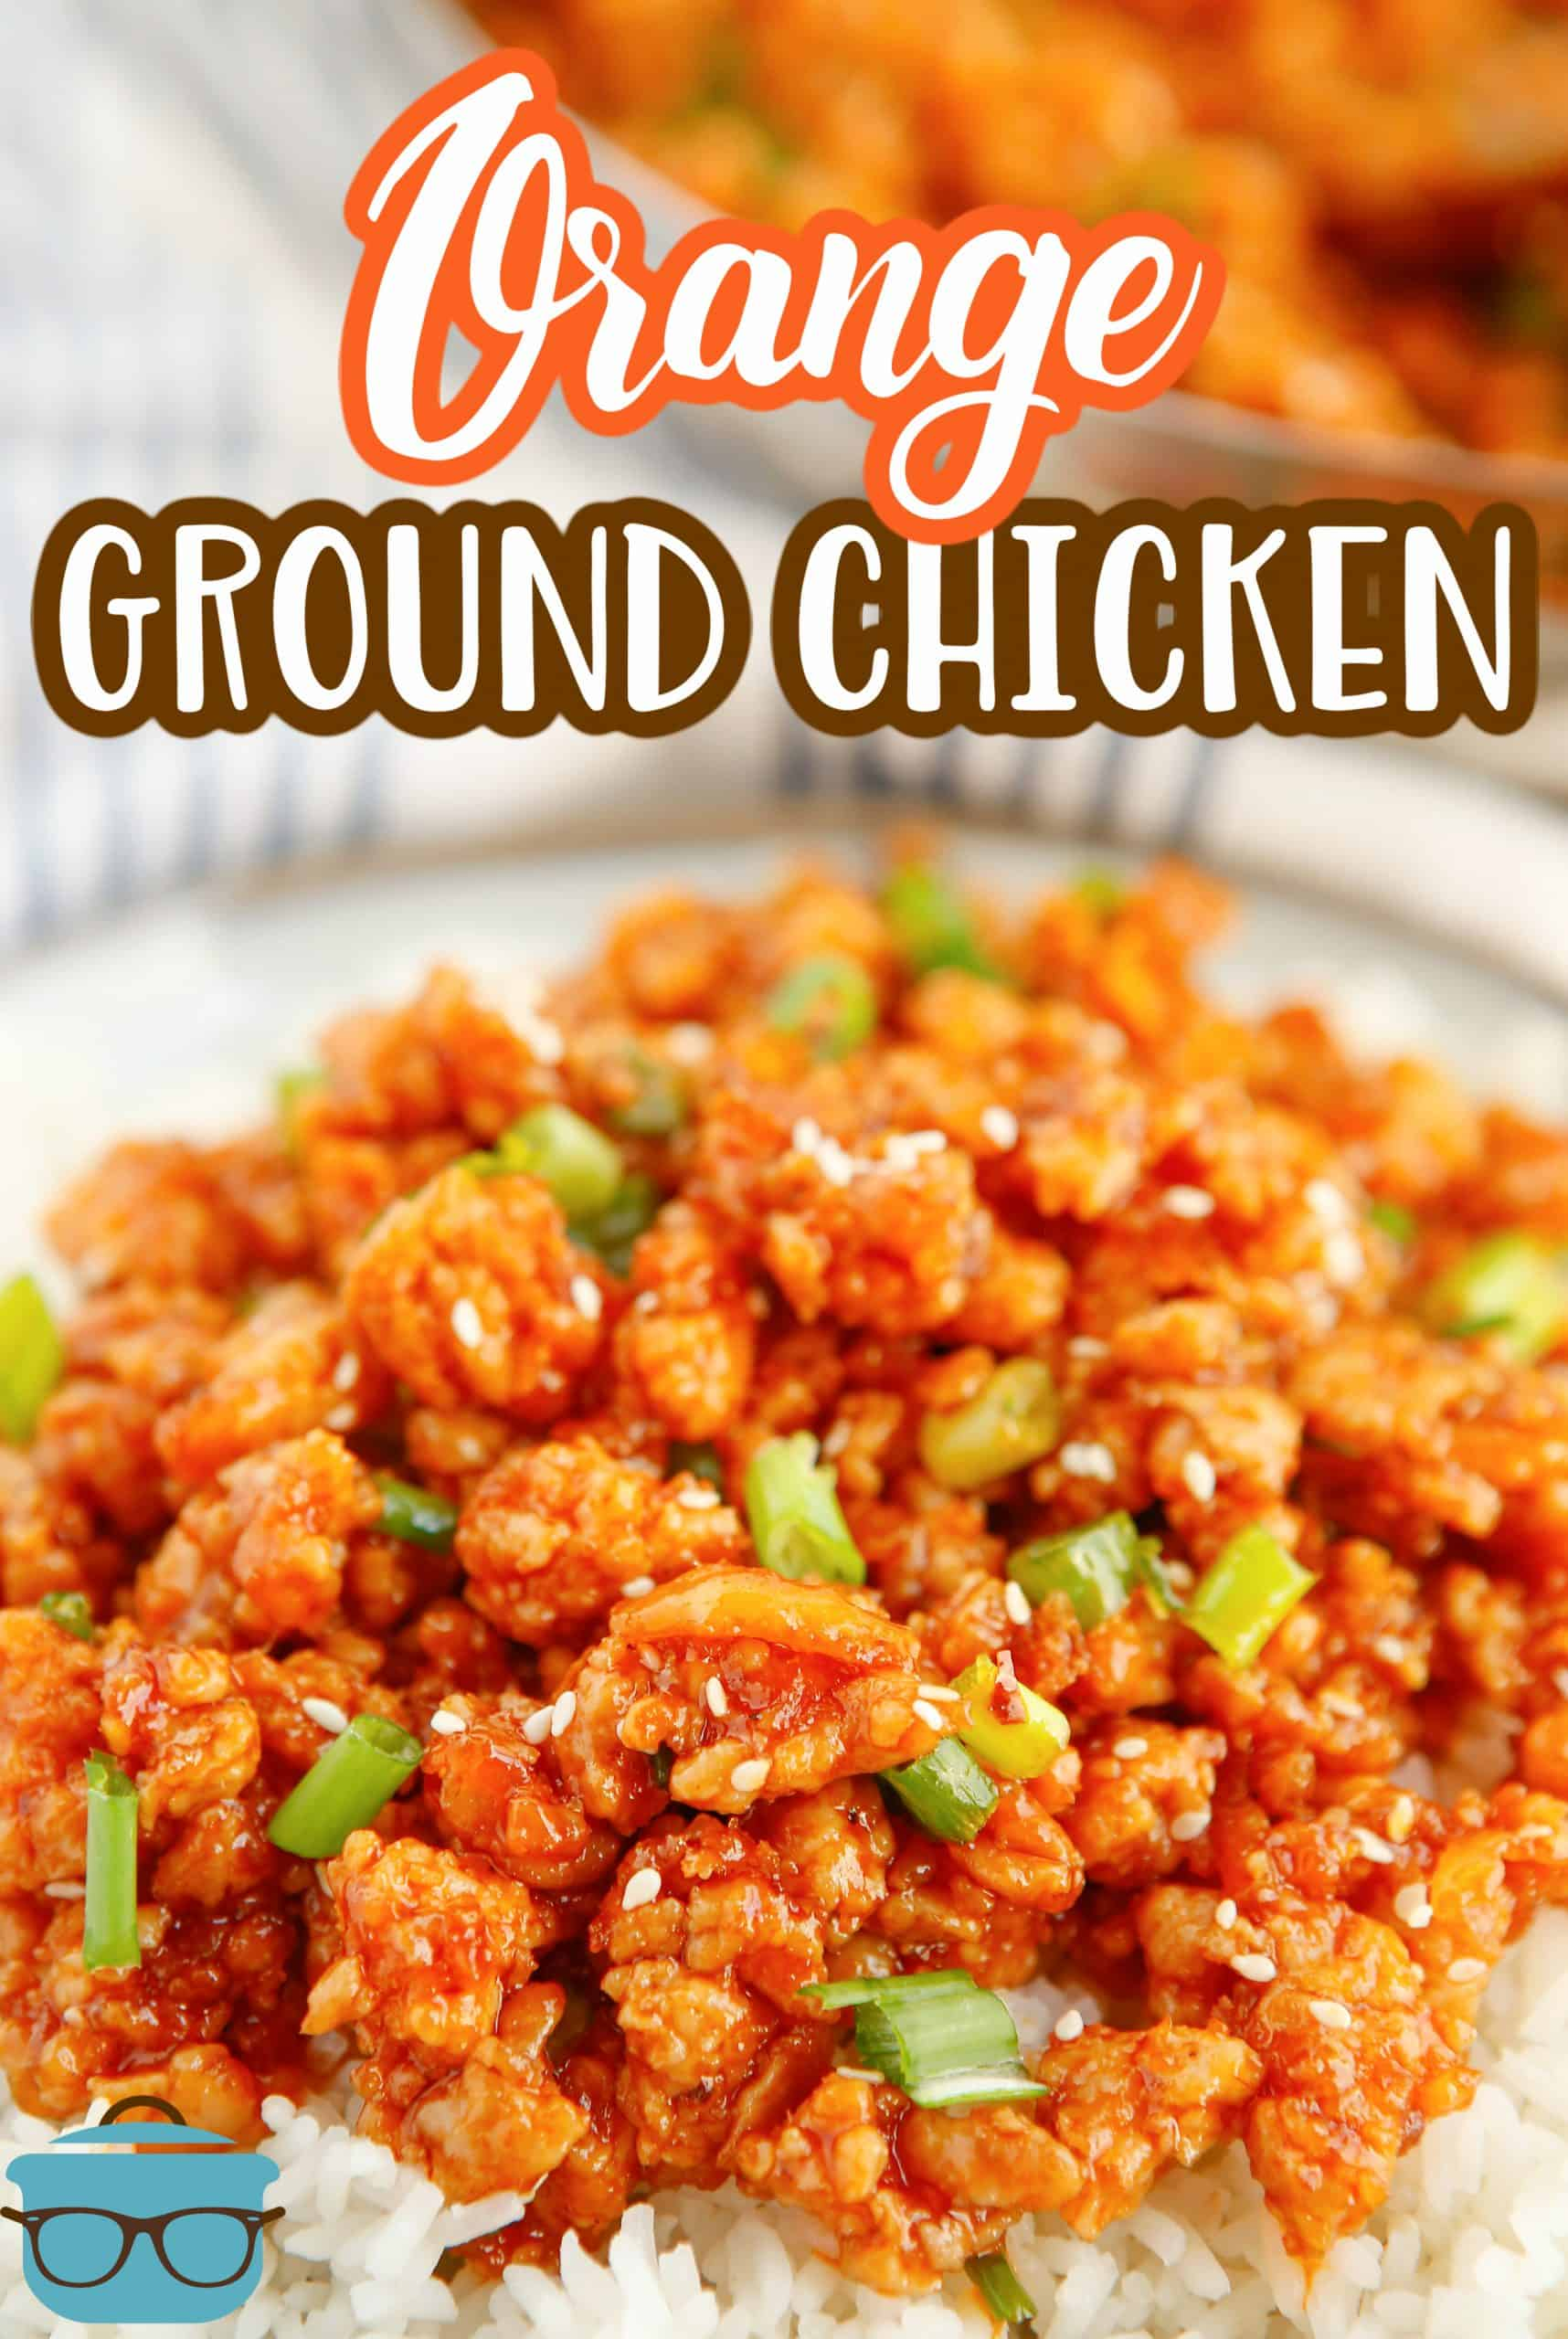 This tasty Ground Orange Chicken recipe is an easy, delicious weeknight meal. It's a fun, fast and much simpler take on traditional Orange Chicken!